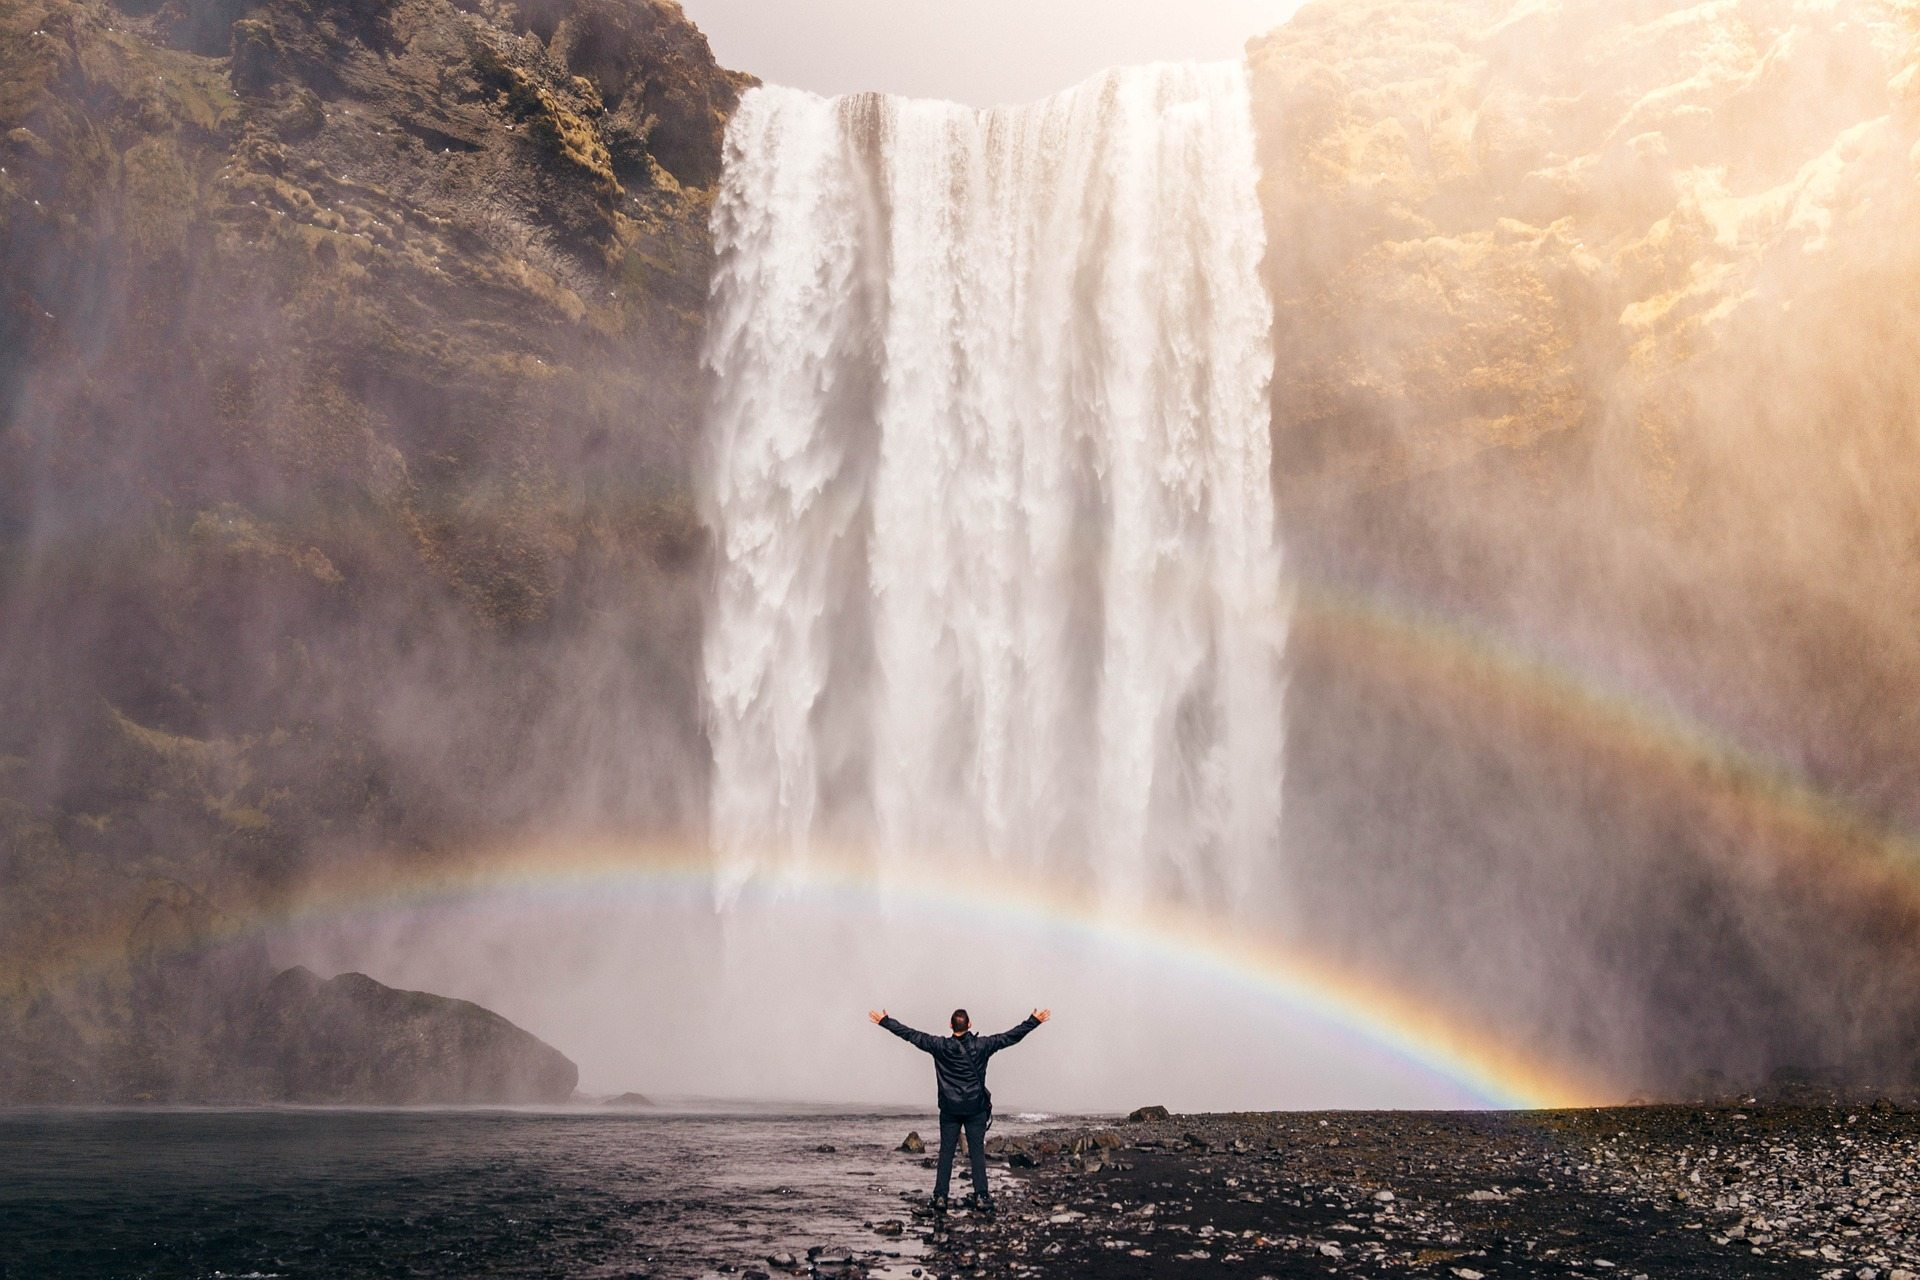 Image: A beautiful waterfall with a double rainbow and a man embracing it all